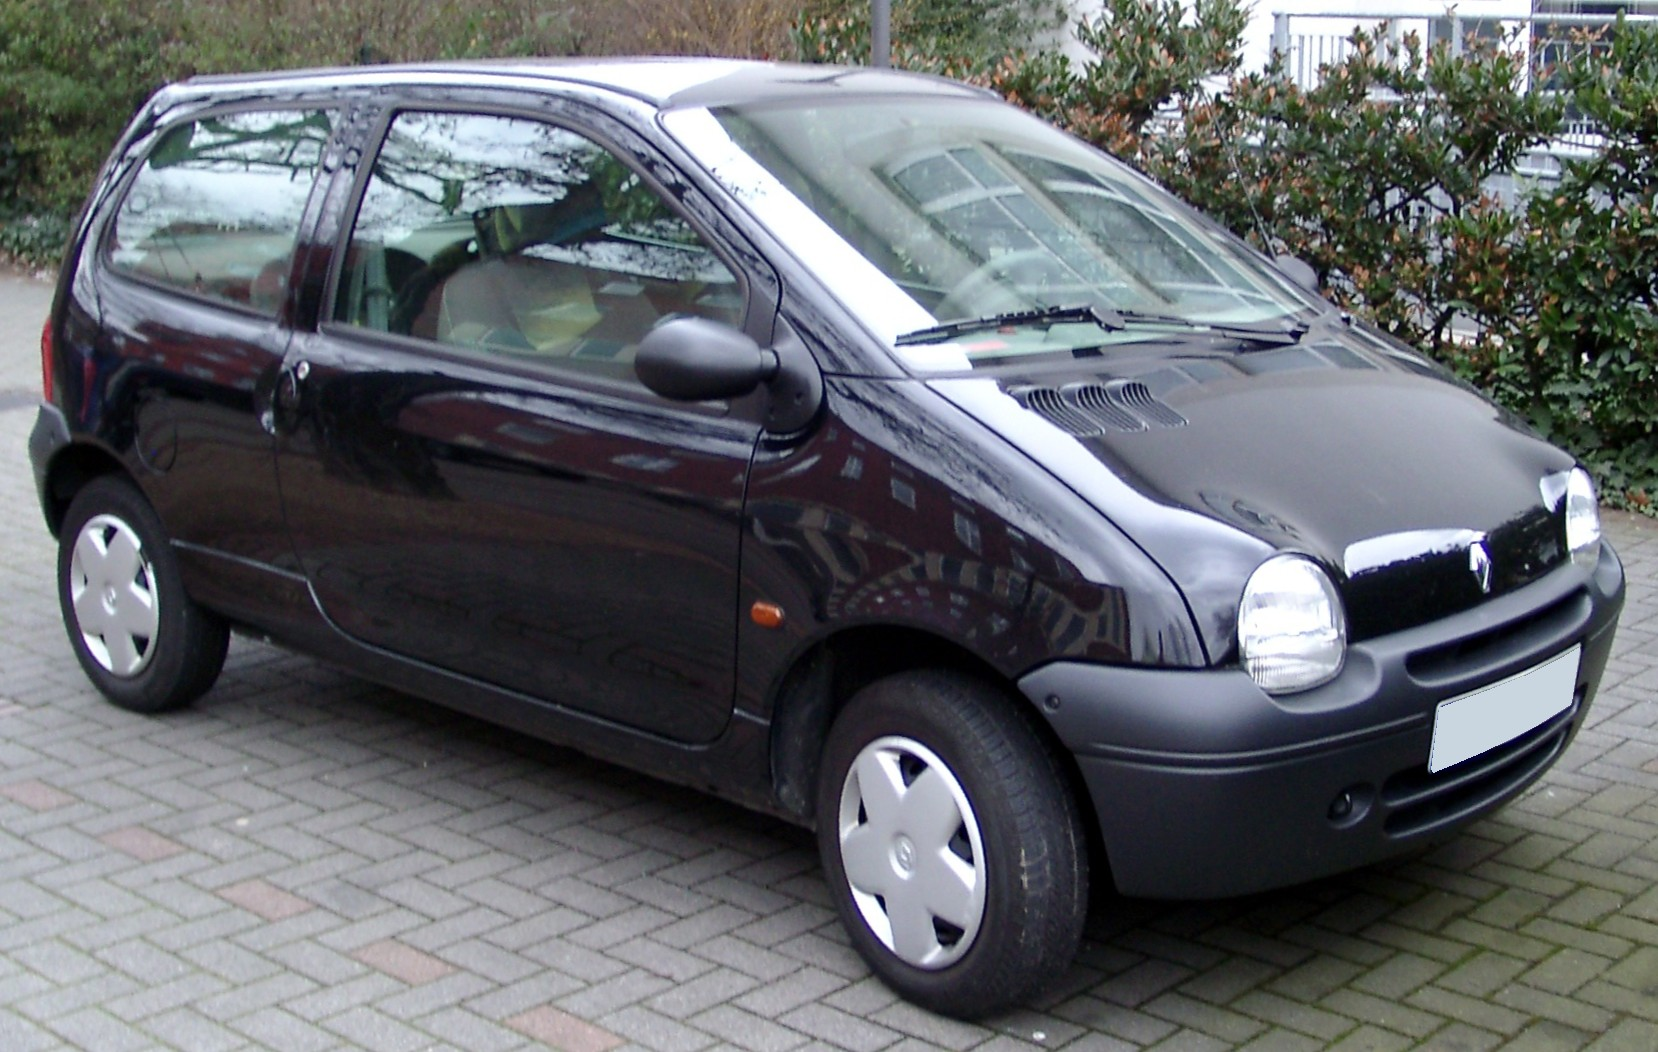 file renault twingo front wikimedia commons